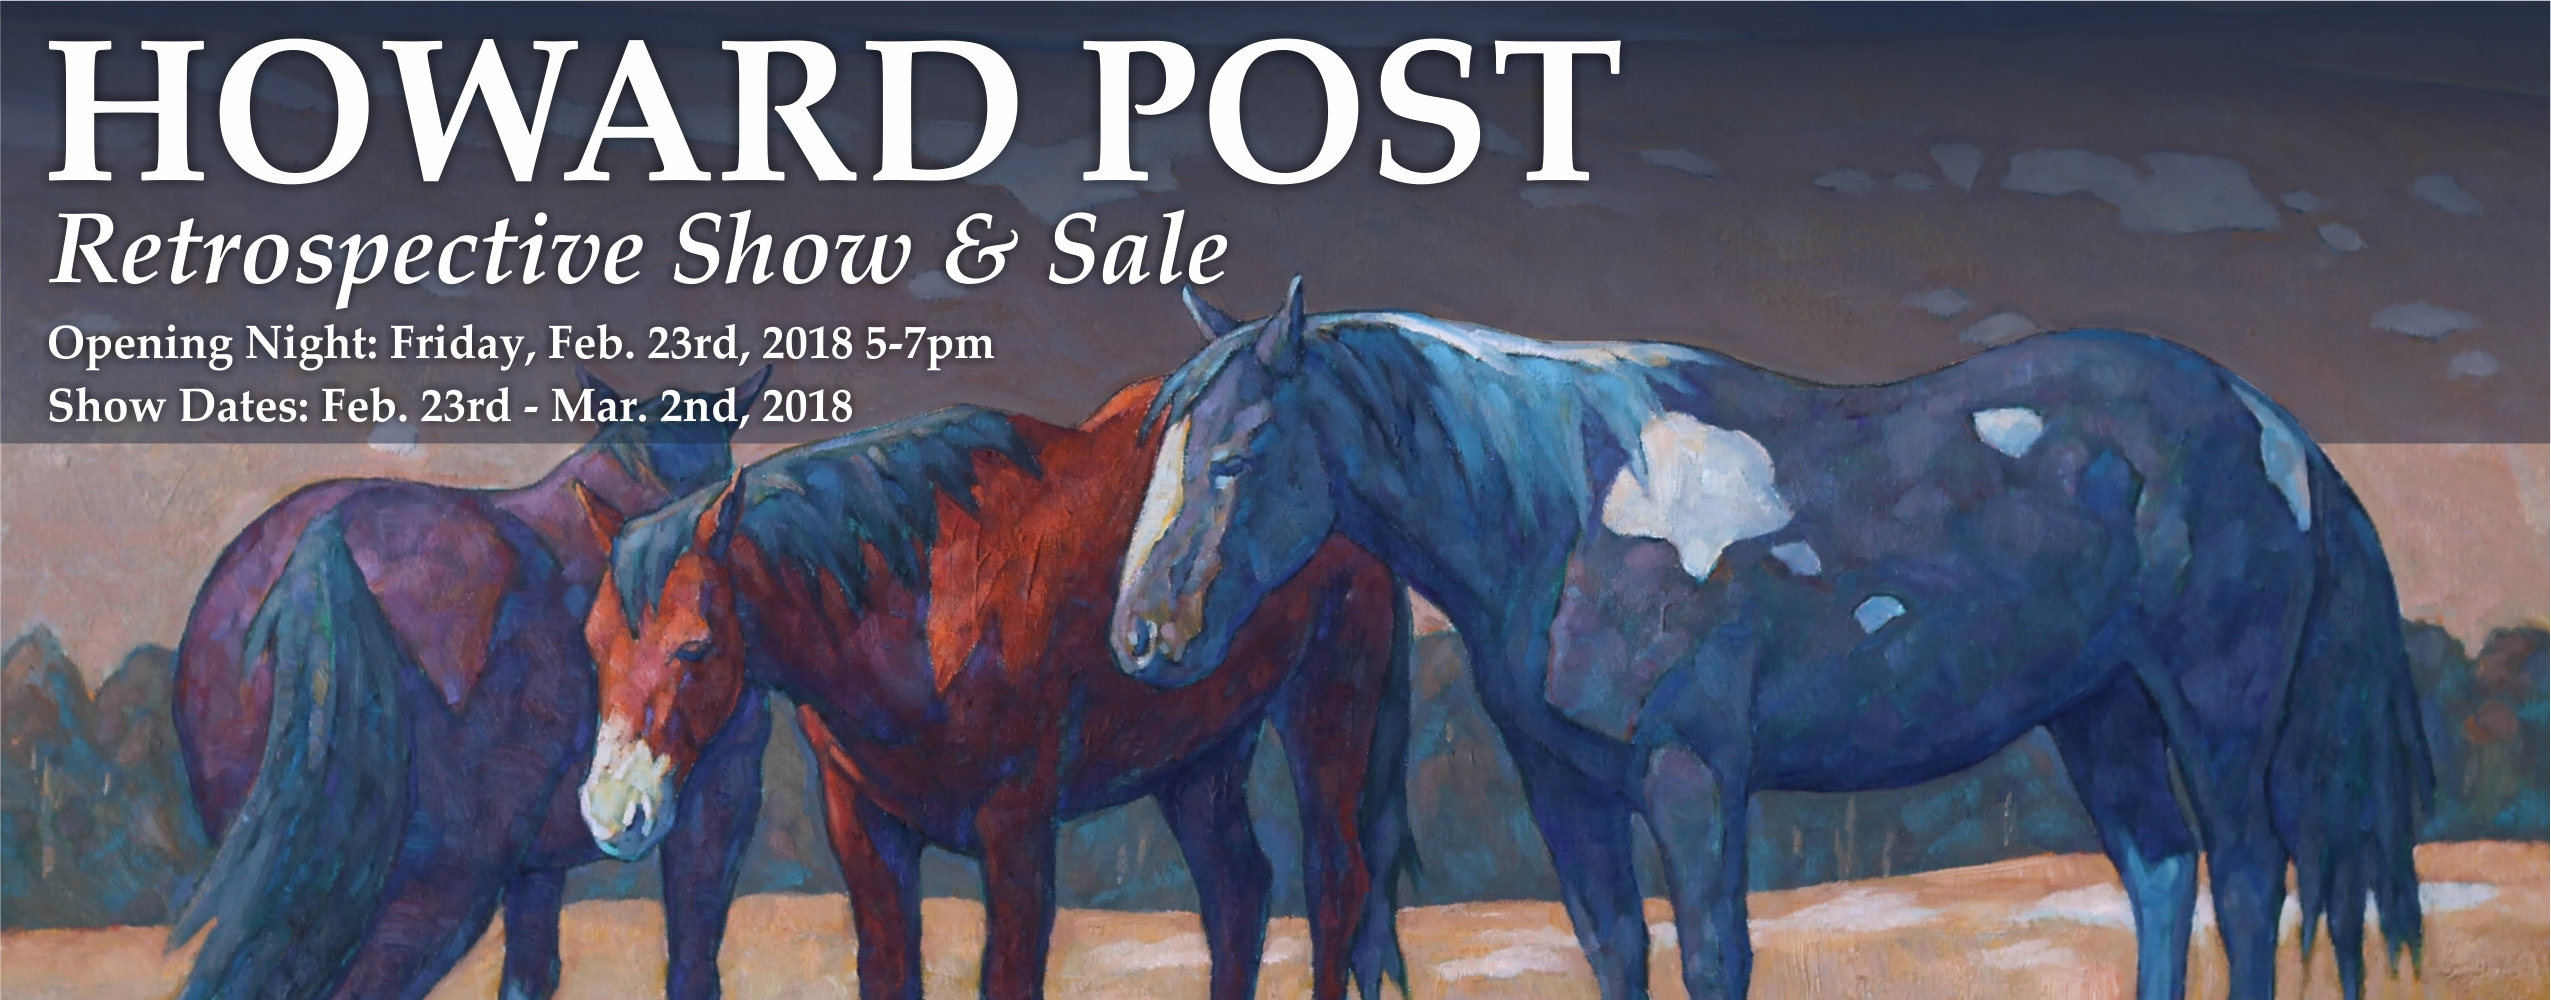 Howard Post Retrospective Show and Sale